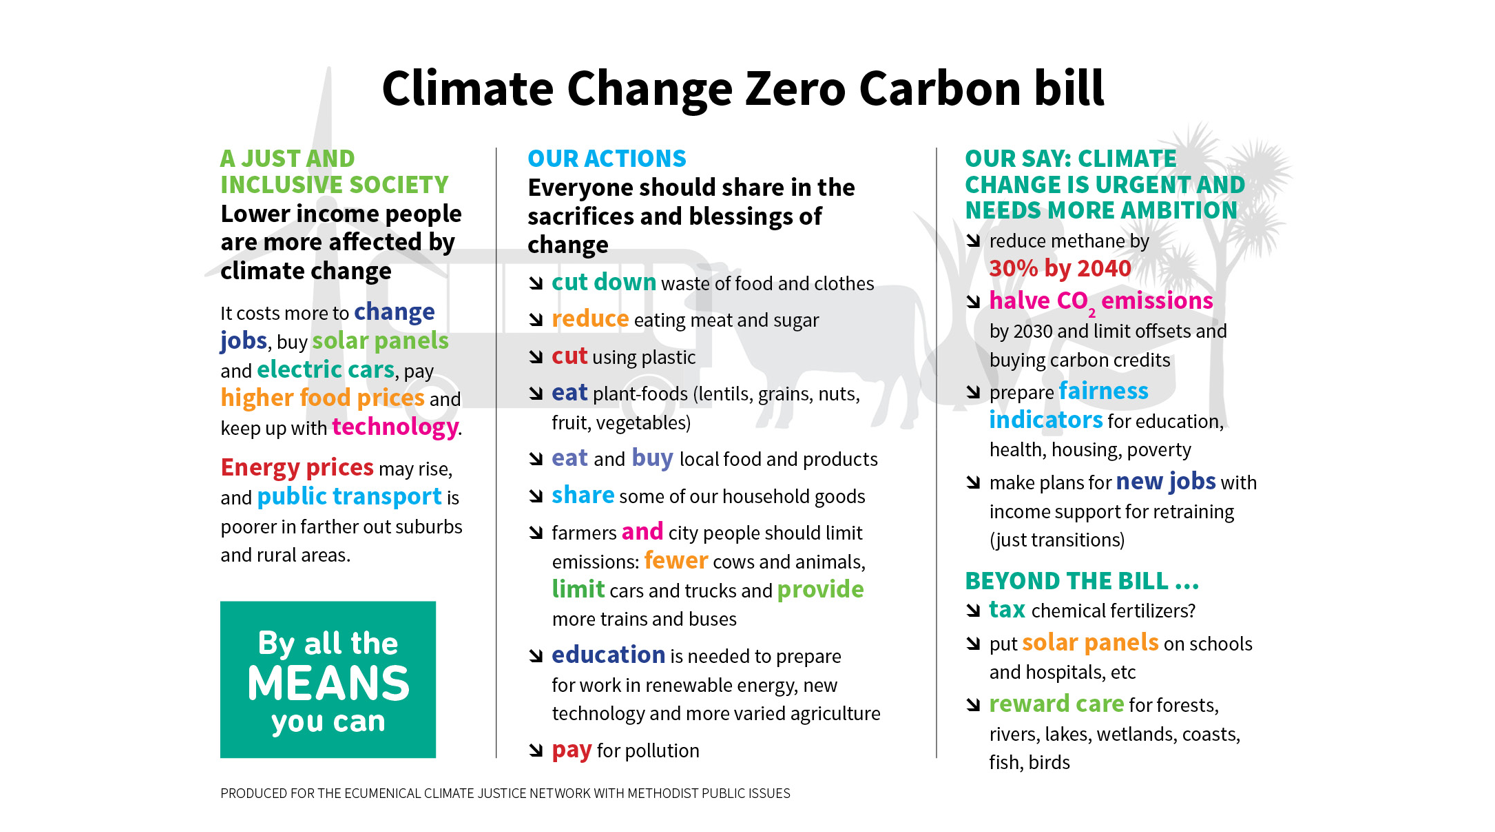 cc zero carbon bill 2.PNG